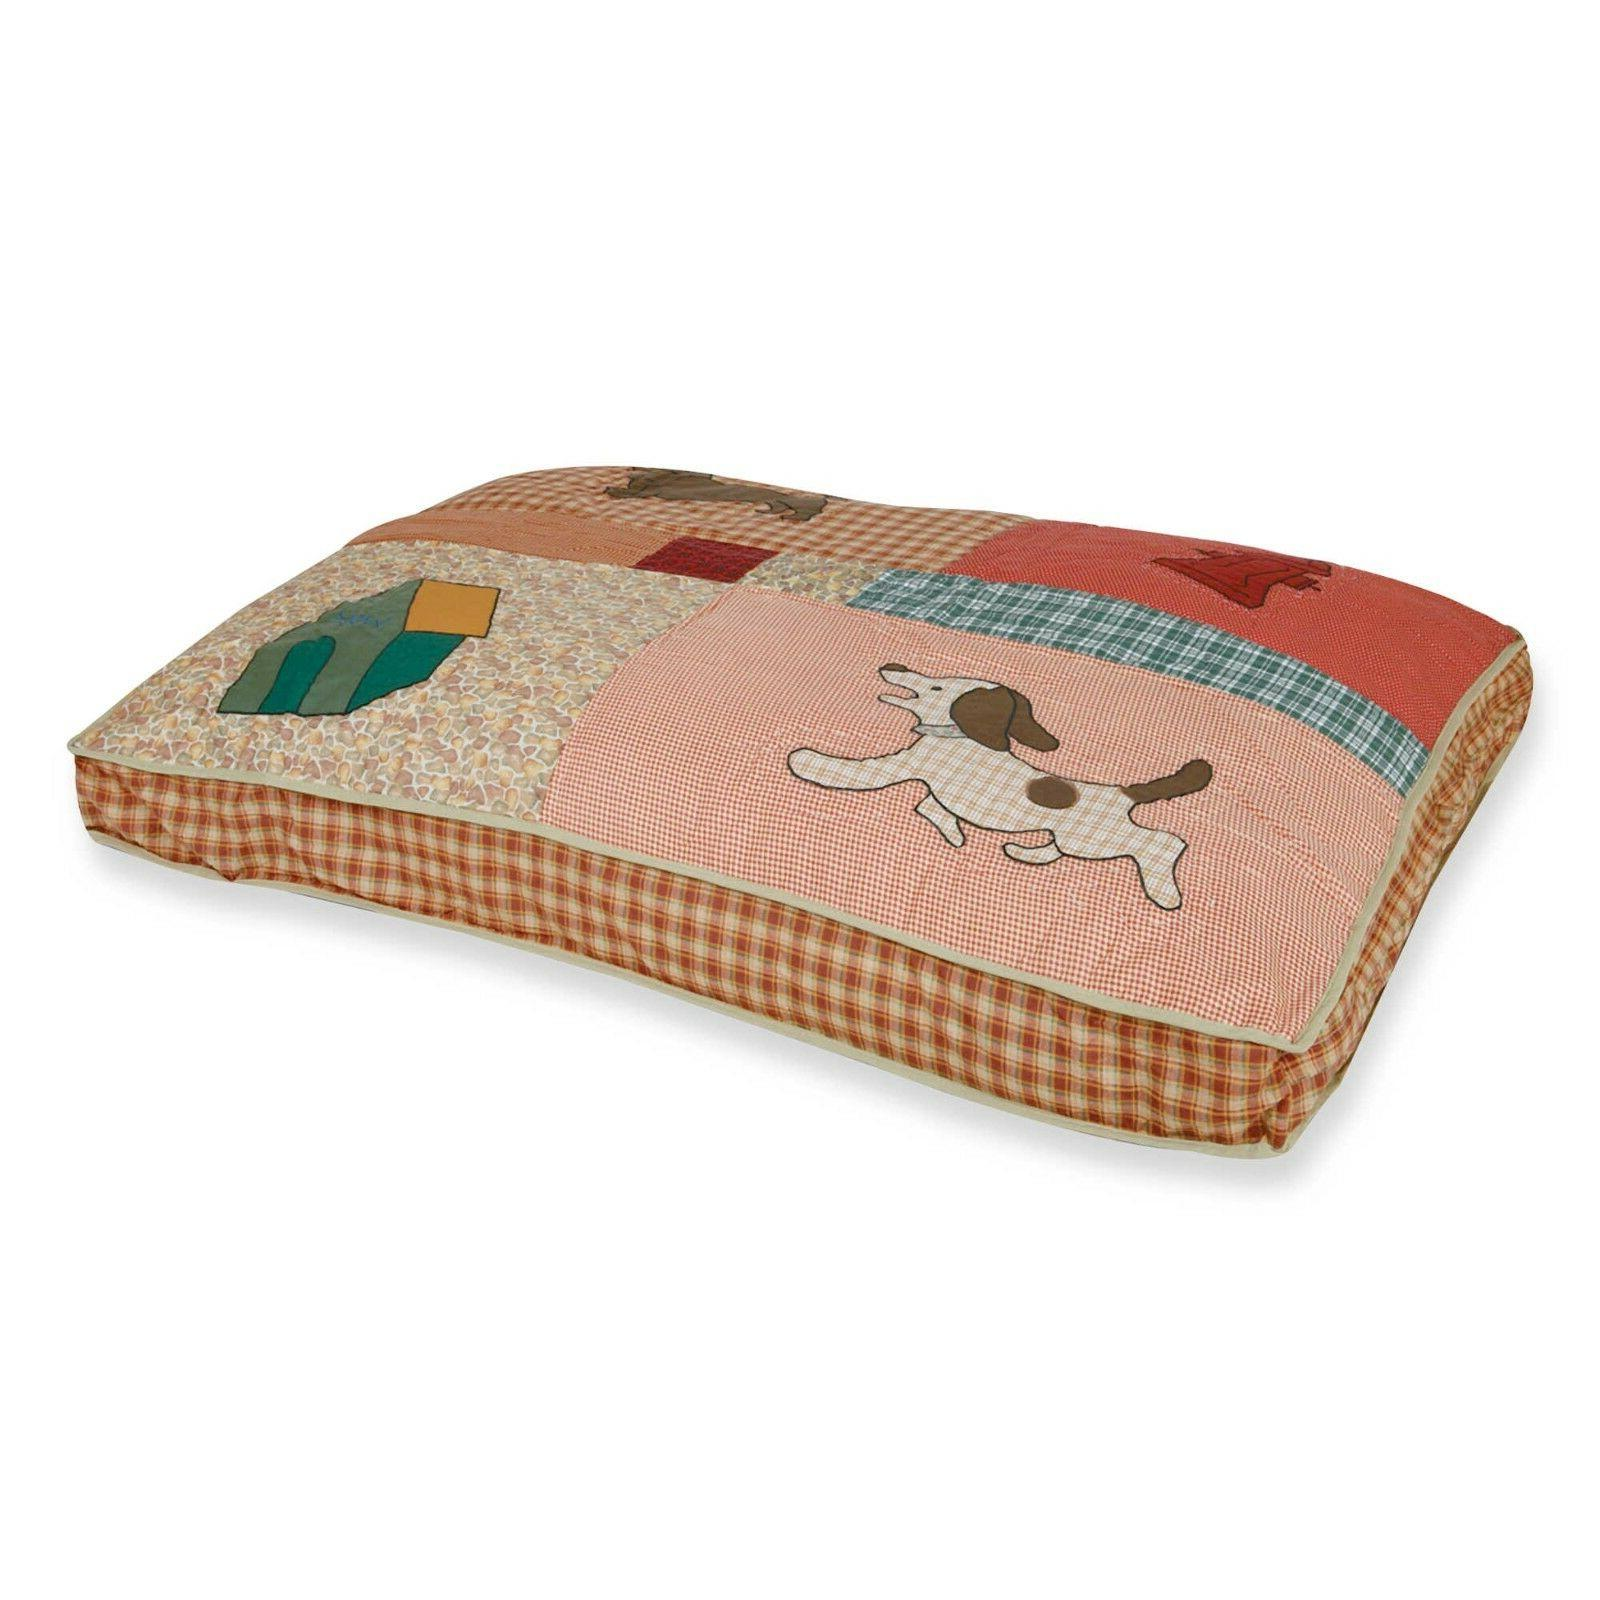 Petmate Applique Quilted Bed 40 Inch x 30 Inch